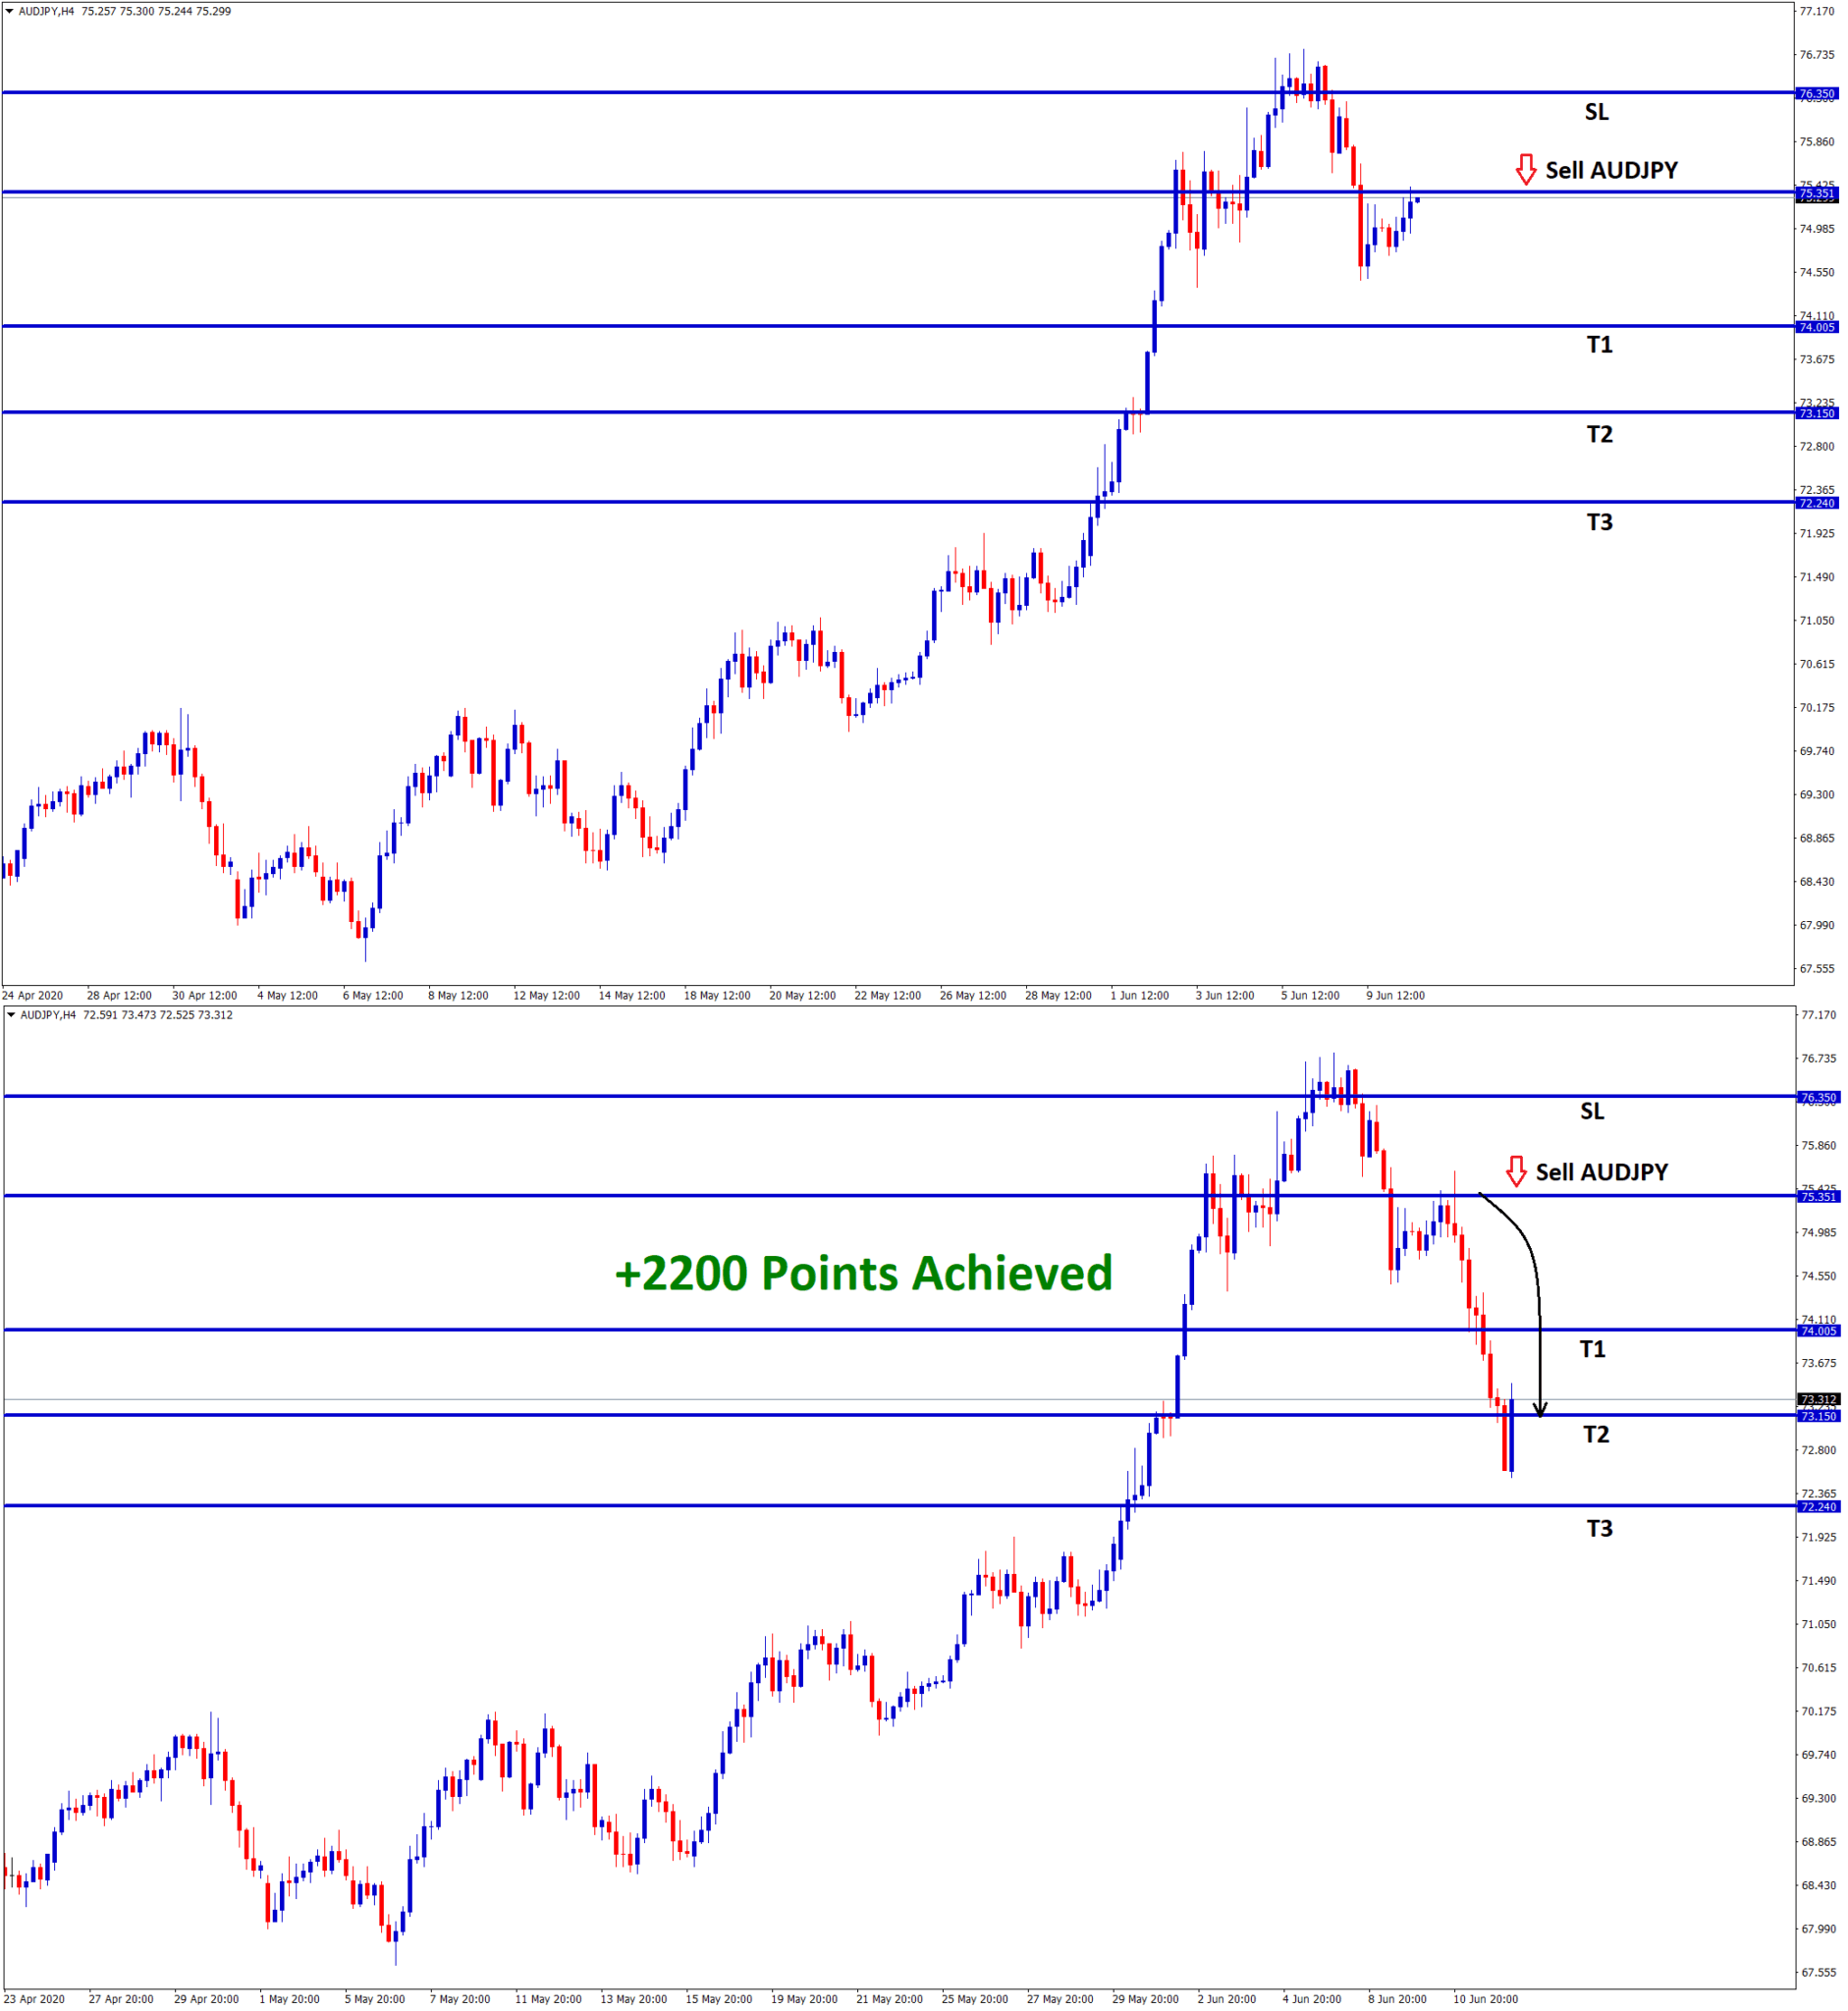 audjpy reach 2200 points profit in sell signal